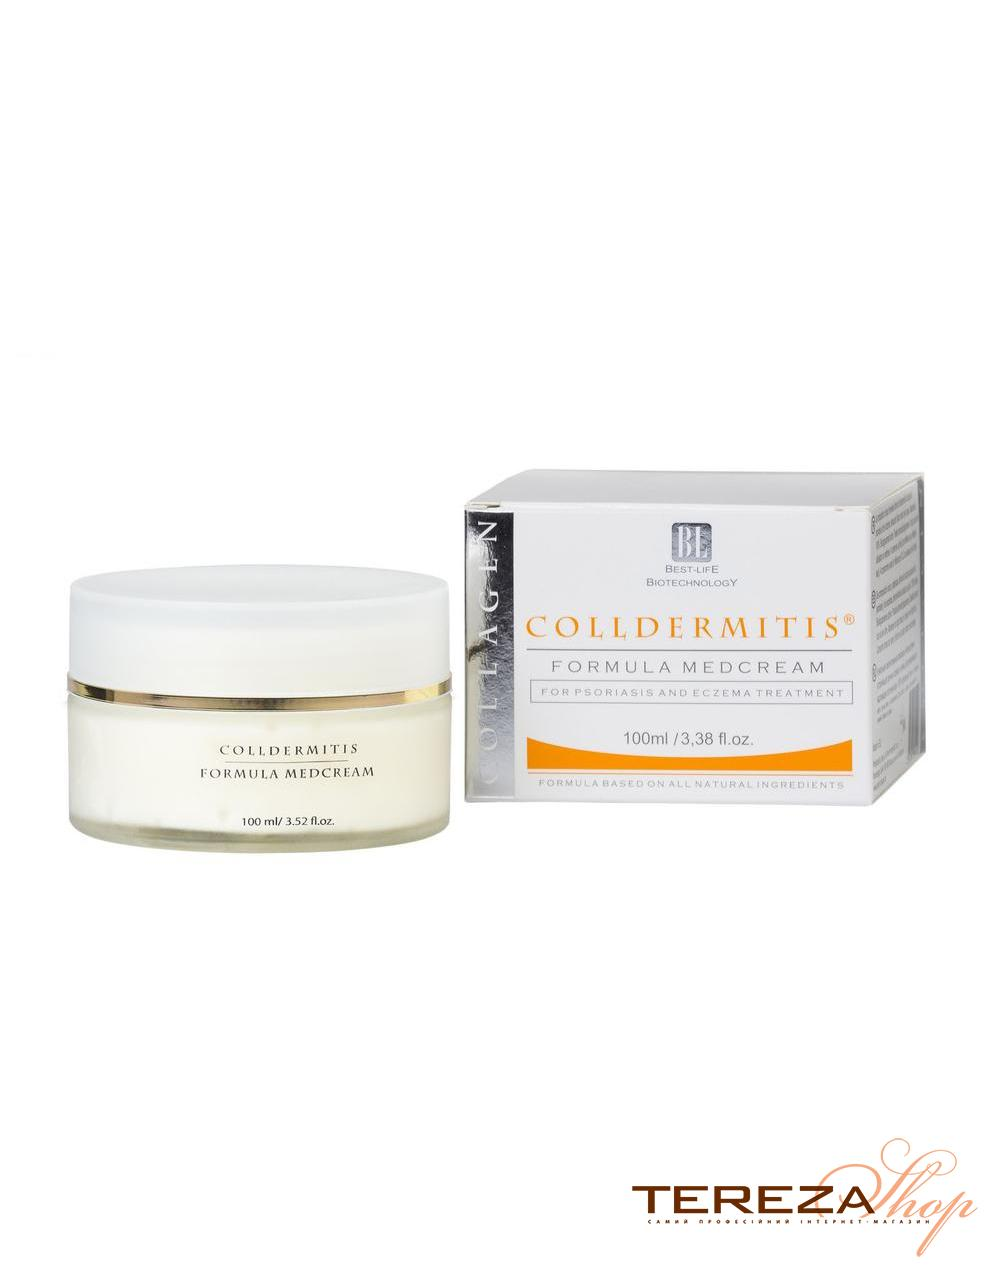 COLLDERMITIS МЕD BALTIC COLLAGEN | Tereza Shop